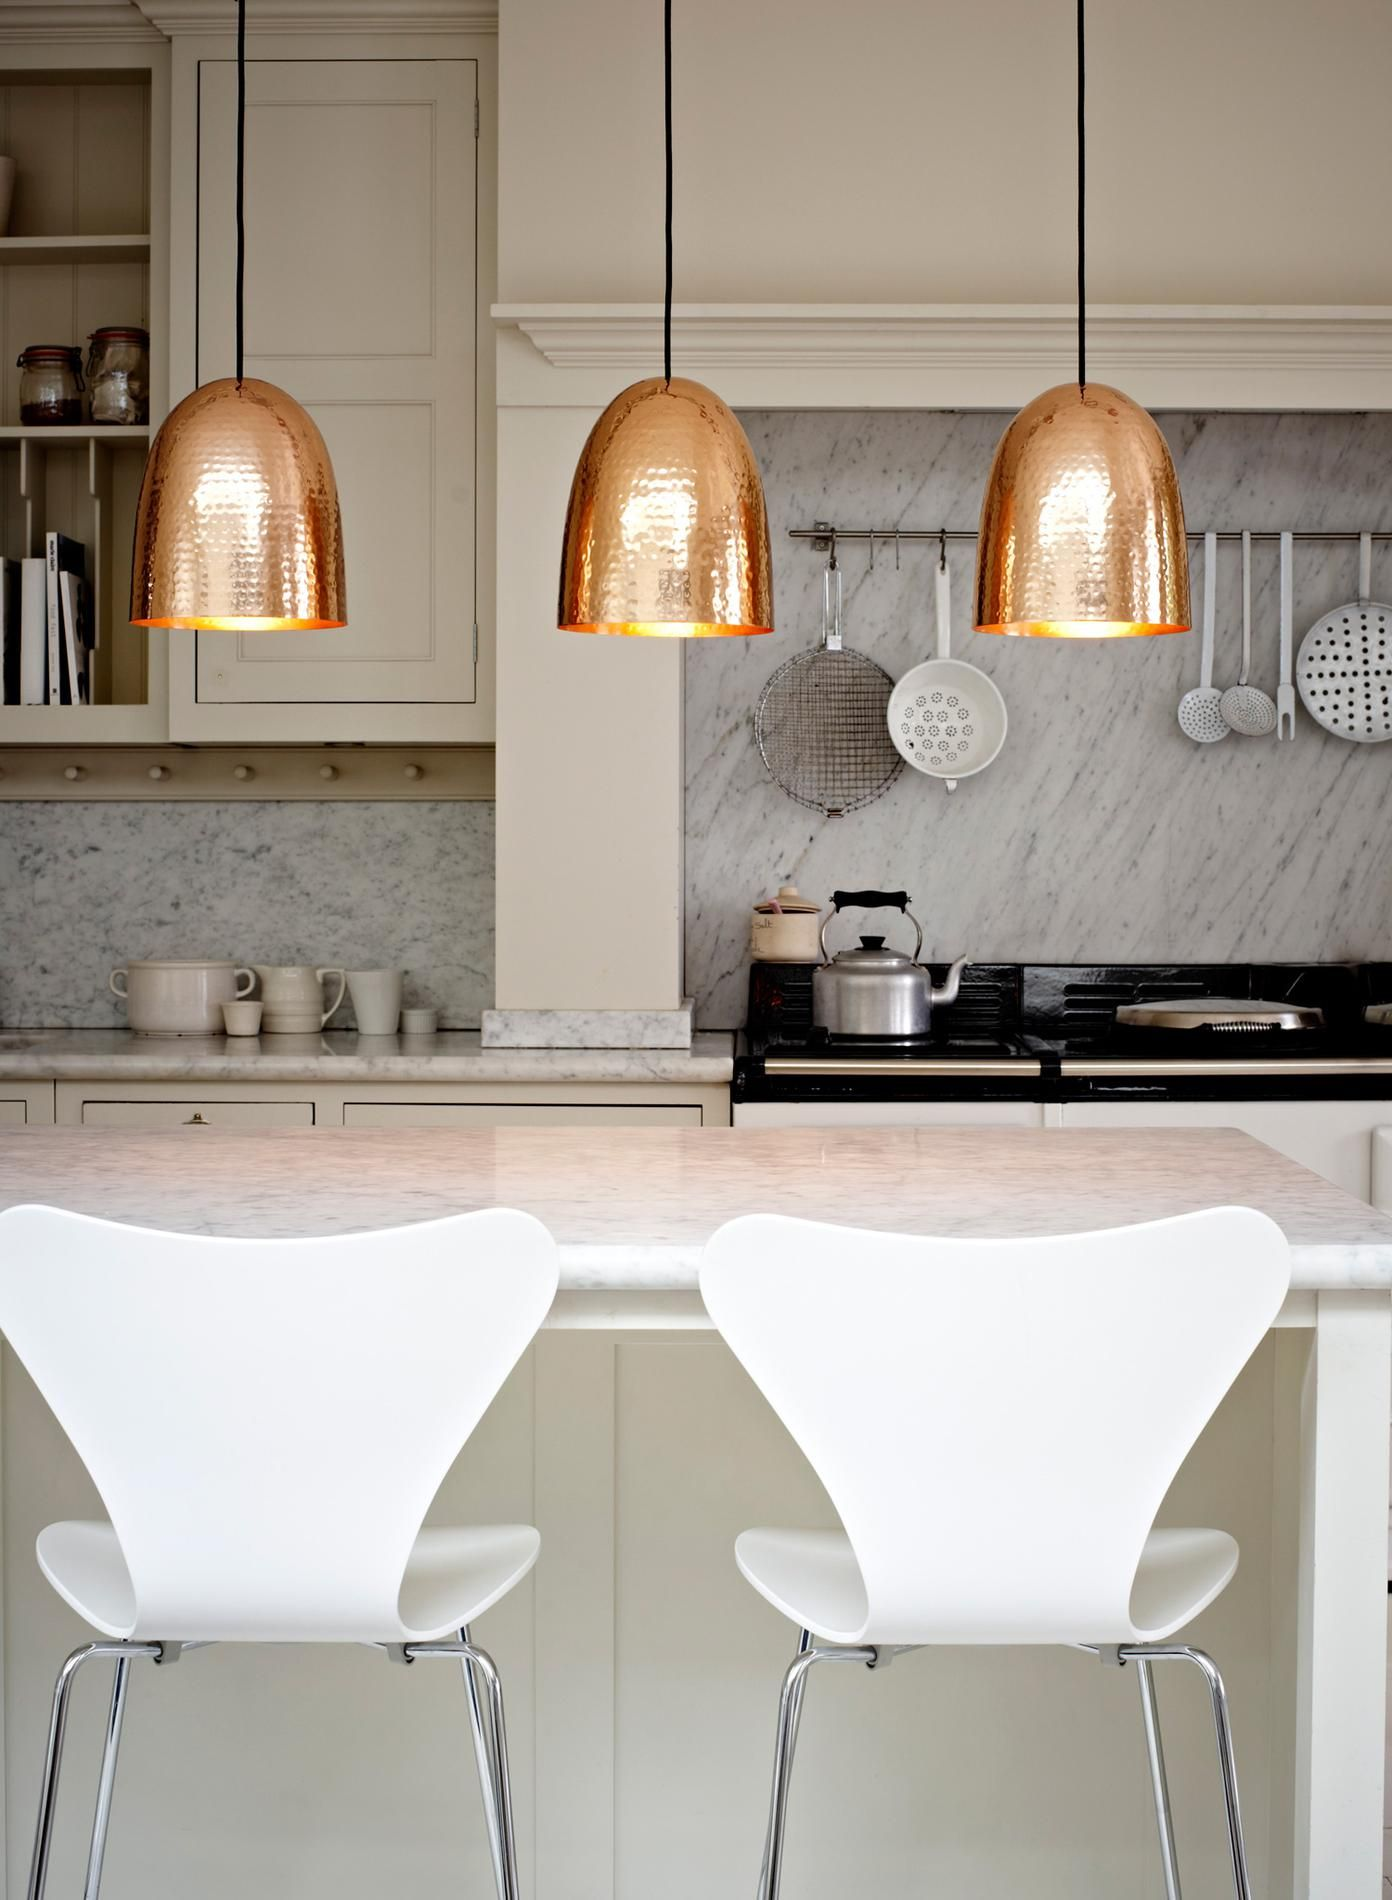 Examples Of Copper Pendant Lighting For Your Home - Hanging lights for kitchen bar